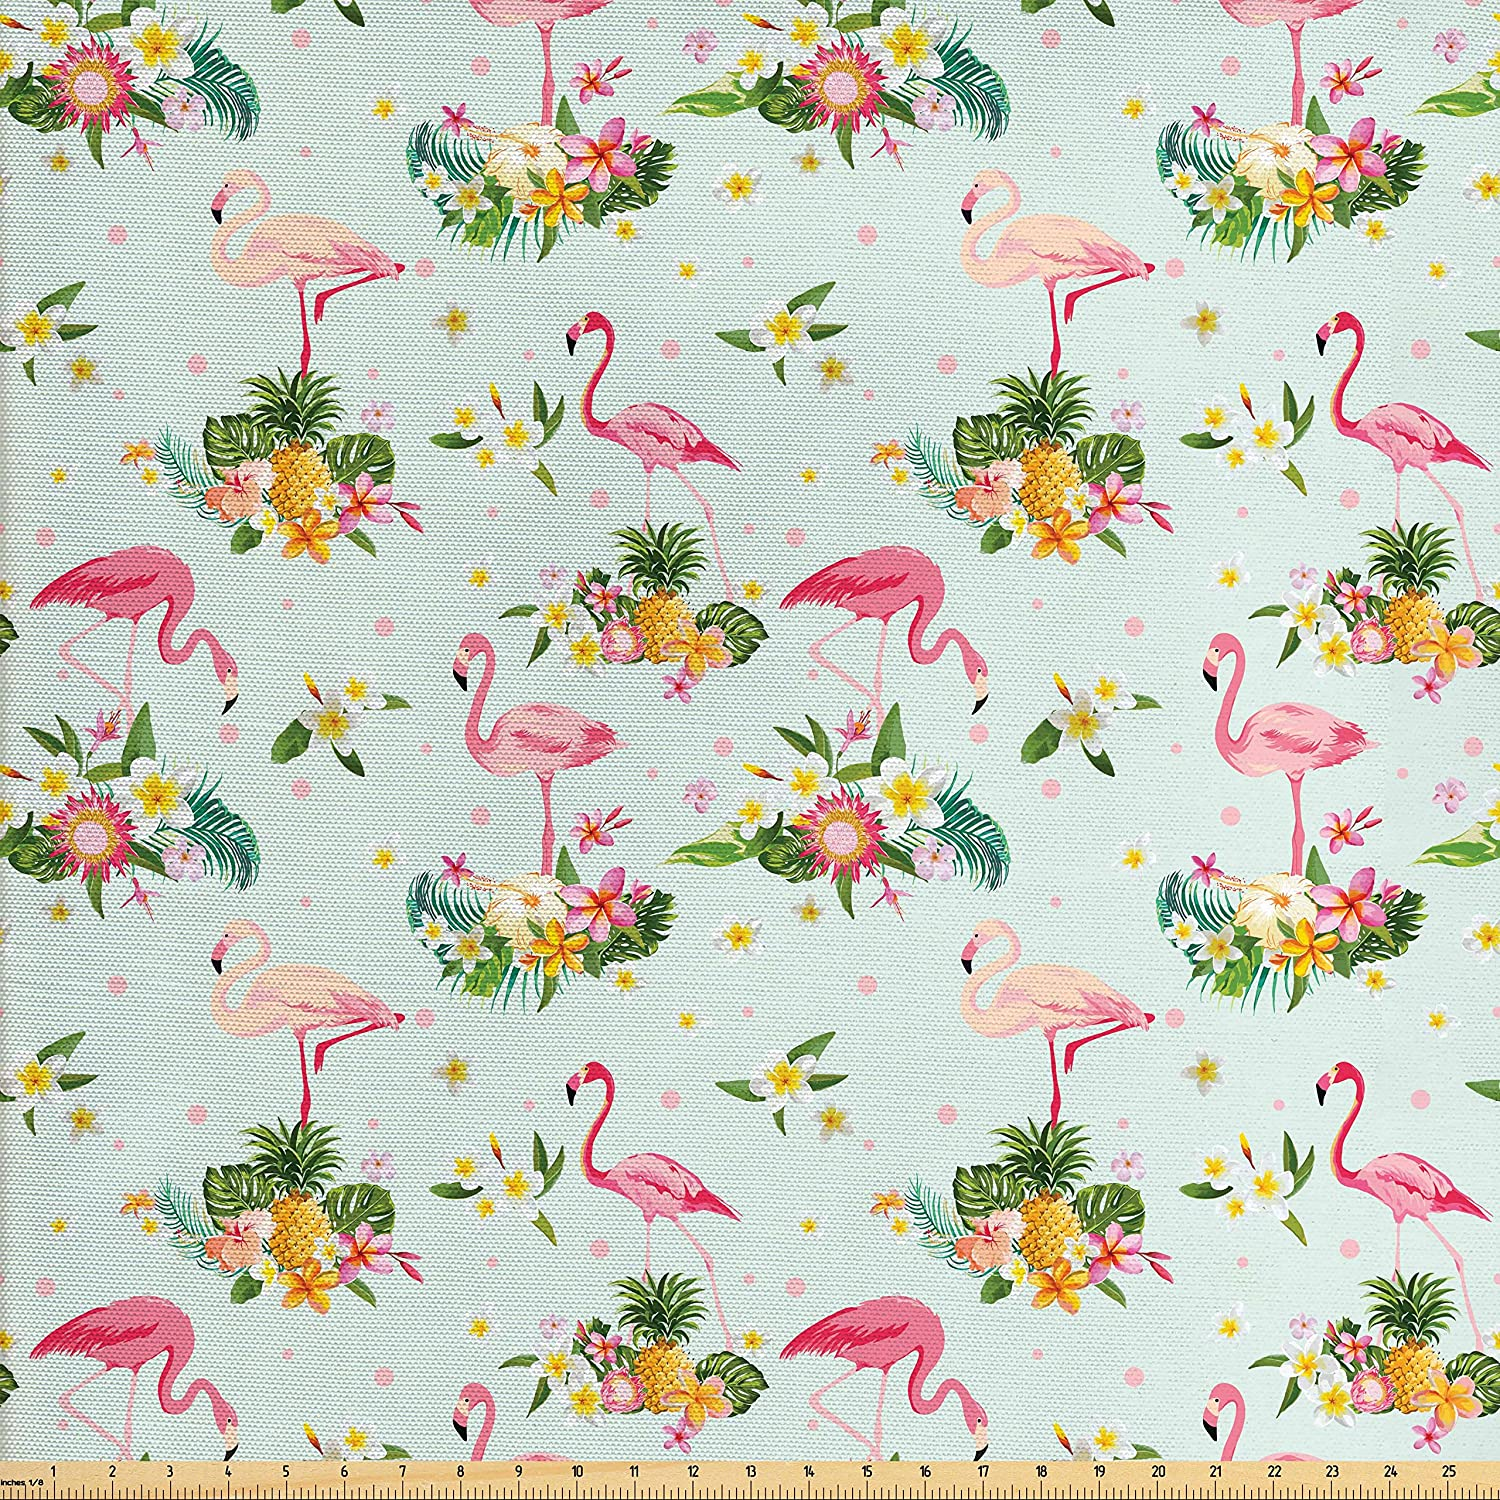 Amazon Com Ambesonne Flamingo Fabric By The Yard Flamingo Bird Tropical Flowers Fruits Pineapples Vintage Style Artwork Decorative Fabric For Upholstery And Home Accents Yellow Green Pale Pink